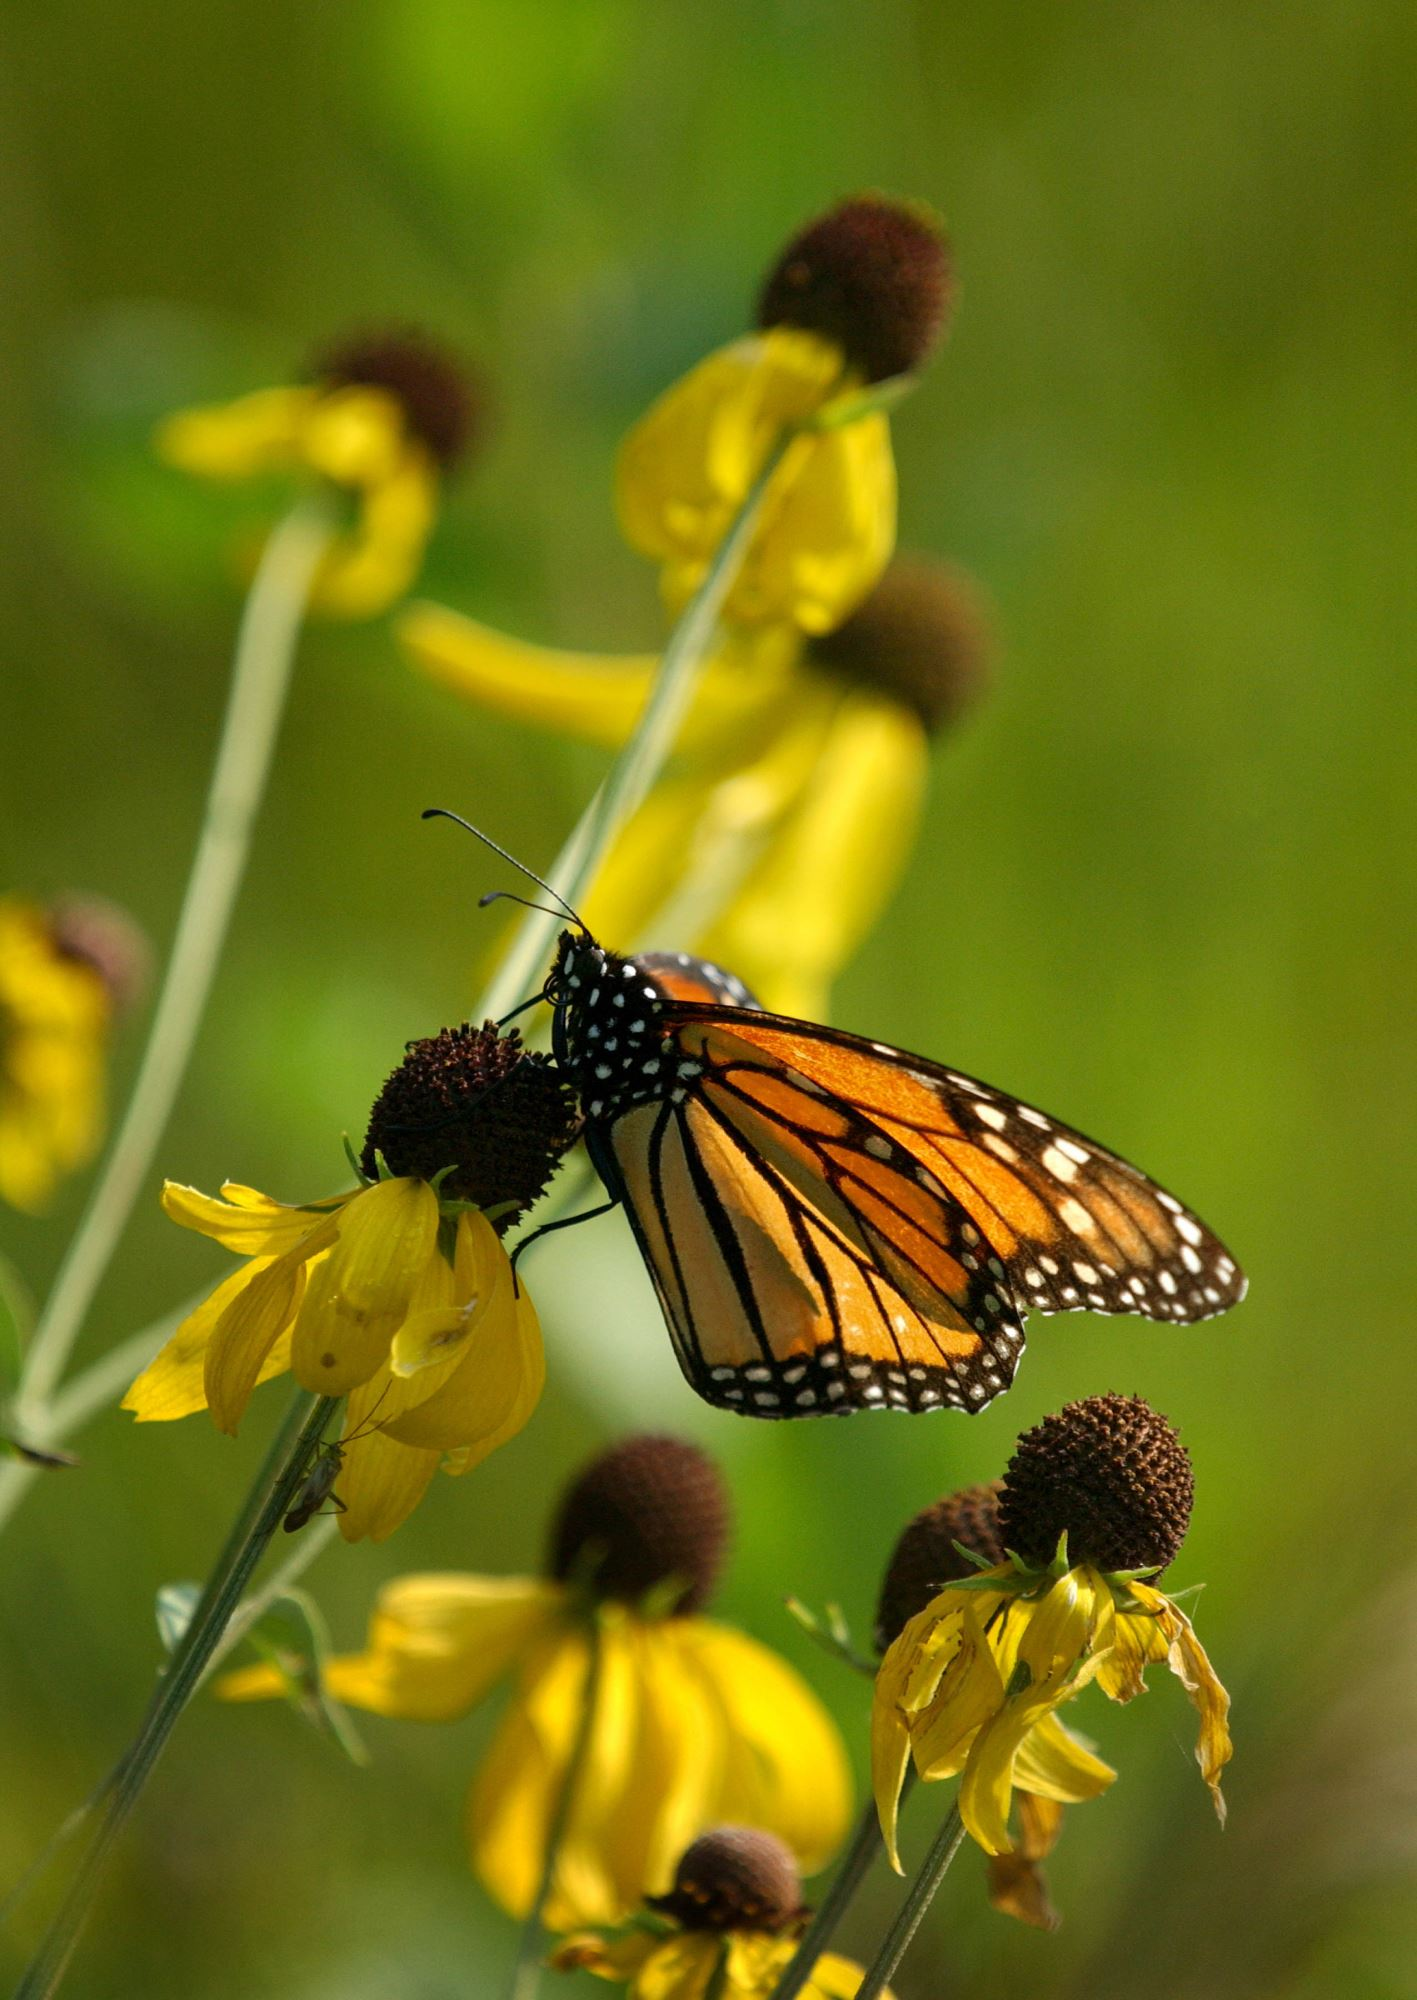 INHF helps protect statewide Monarch habitat with pollinator partnership